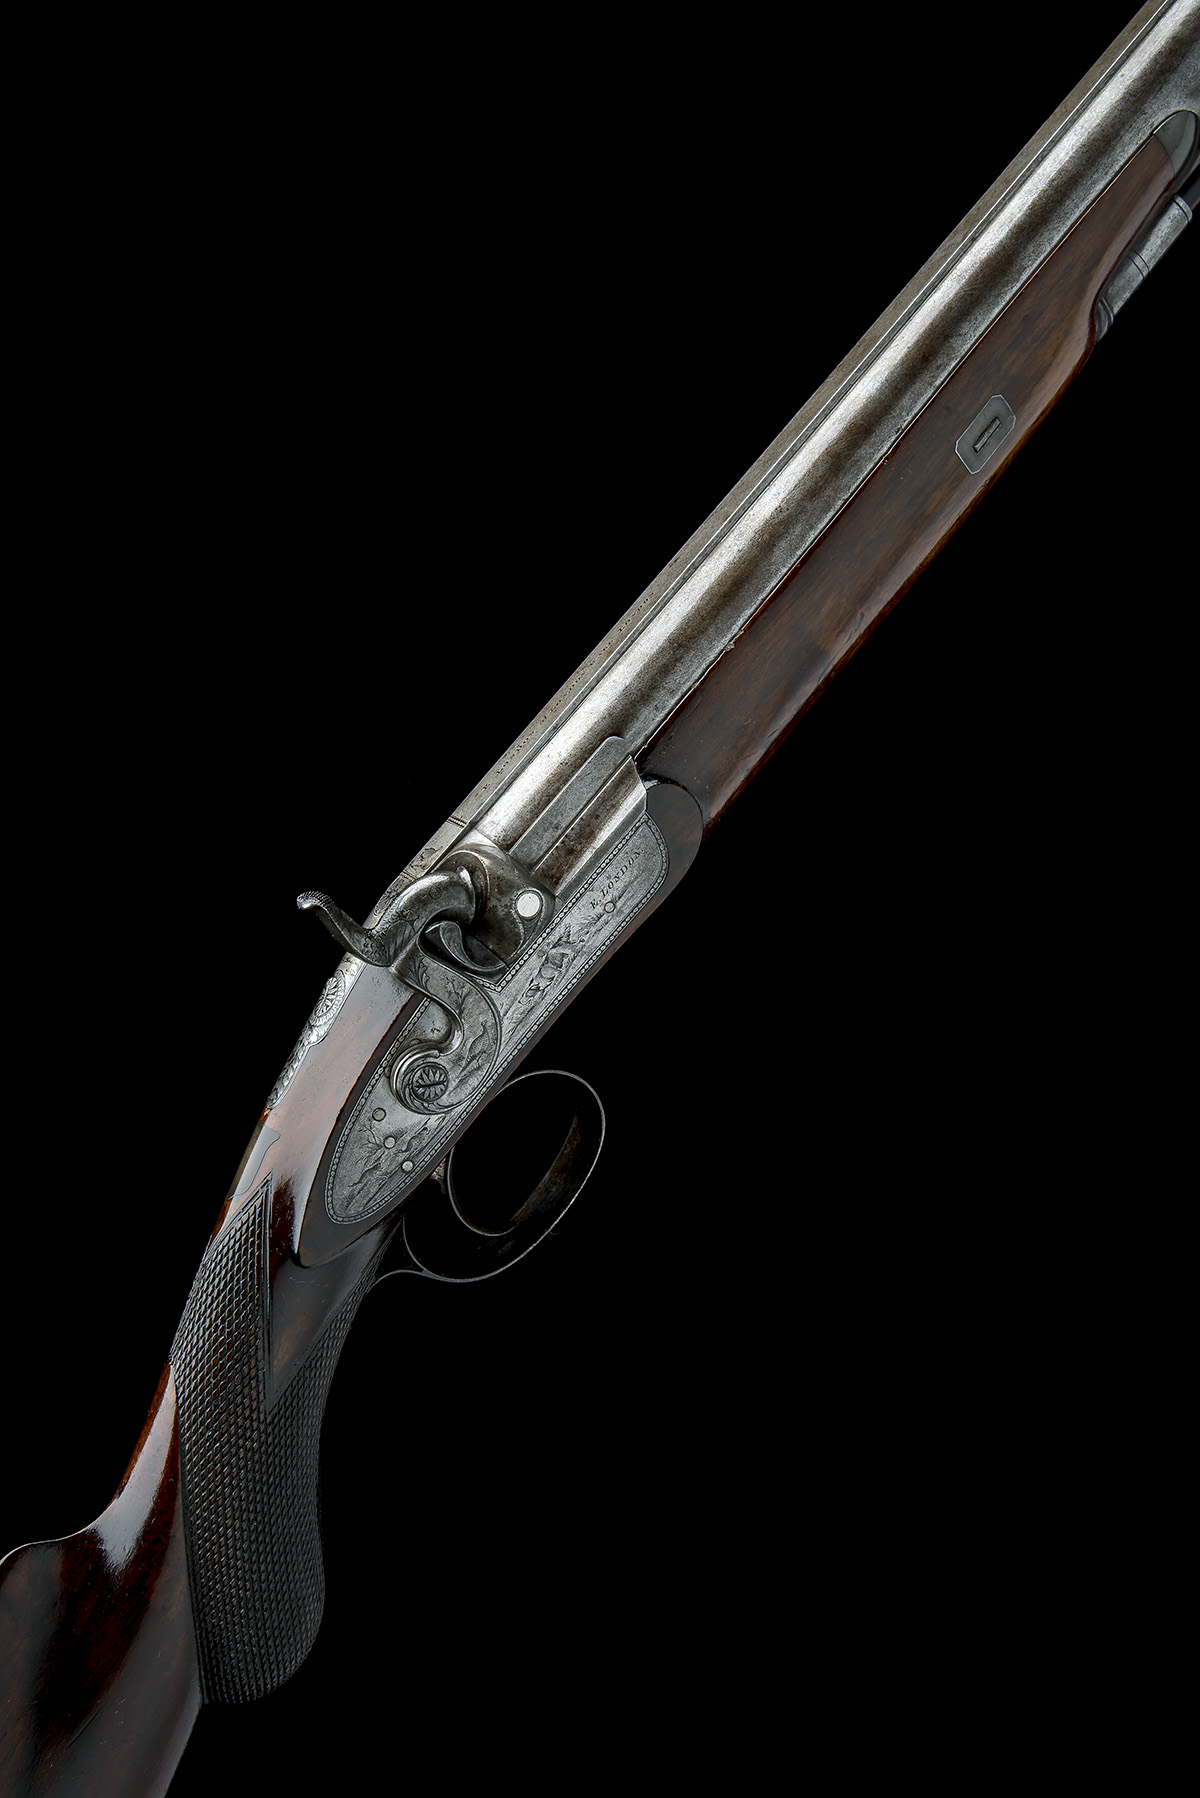 E. LONDON, LONDON AN 11-BORE PERCUSSION SINGLE-BARRELLED SPORTING-GUN, no visible serial number,